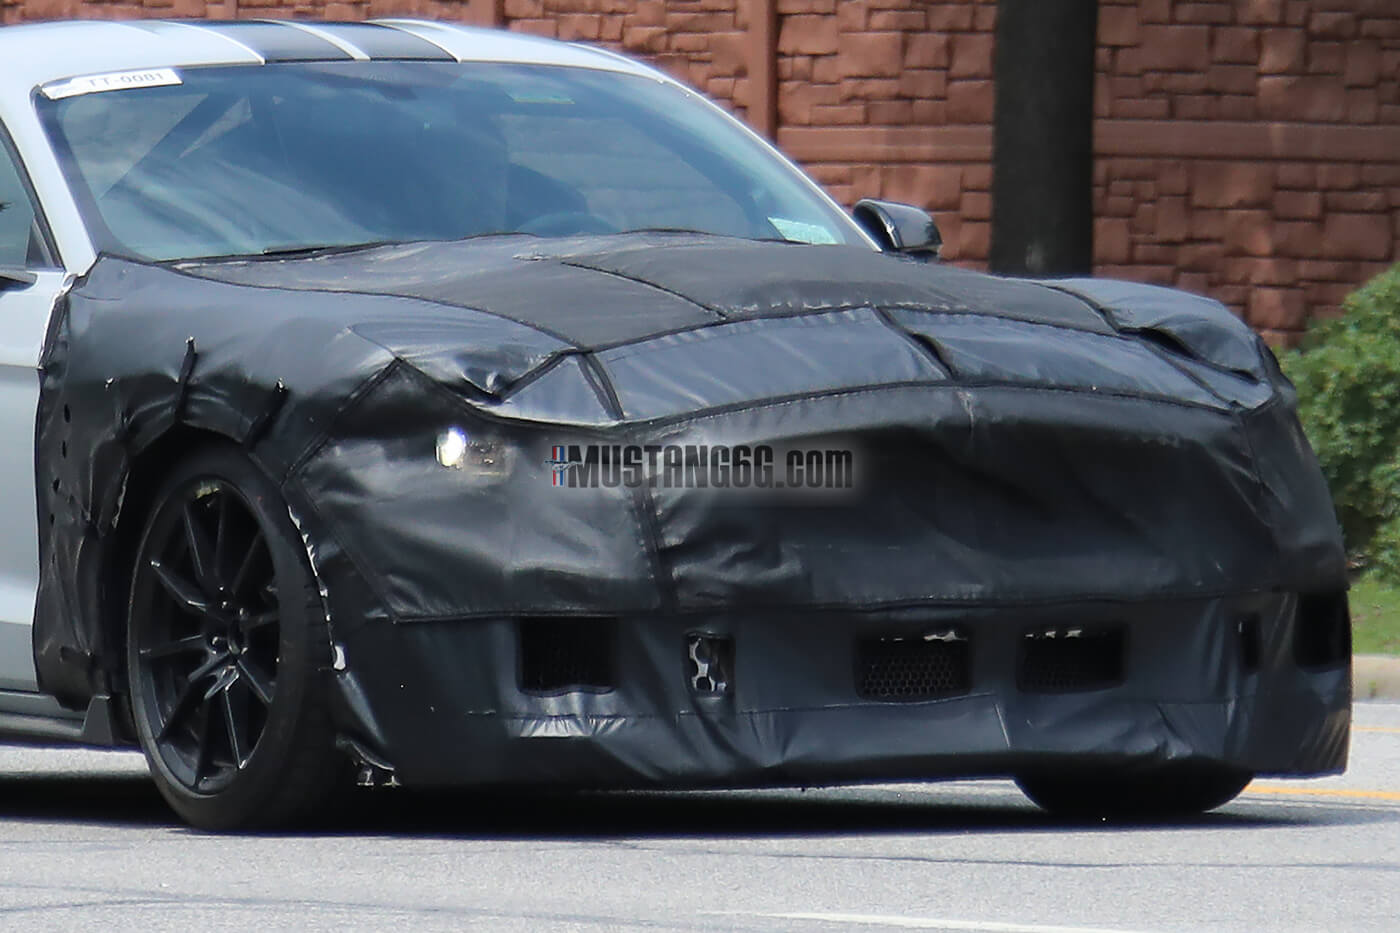 2020 Shelby GT500 Horsepower, Specs, Photos, & Colors - 2020 Shelby GT500 Spy Shots